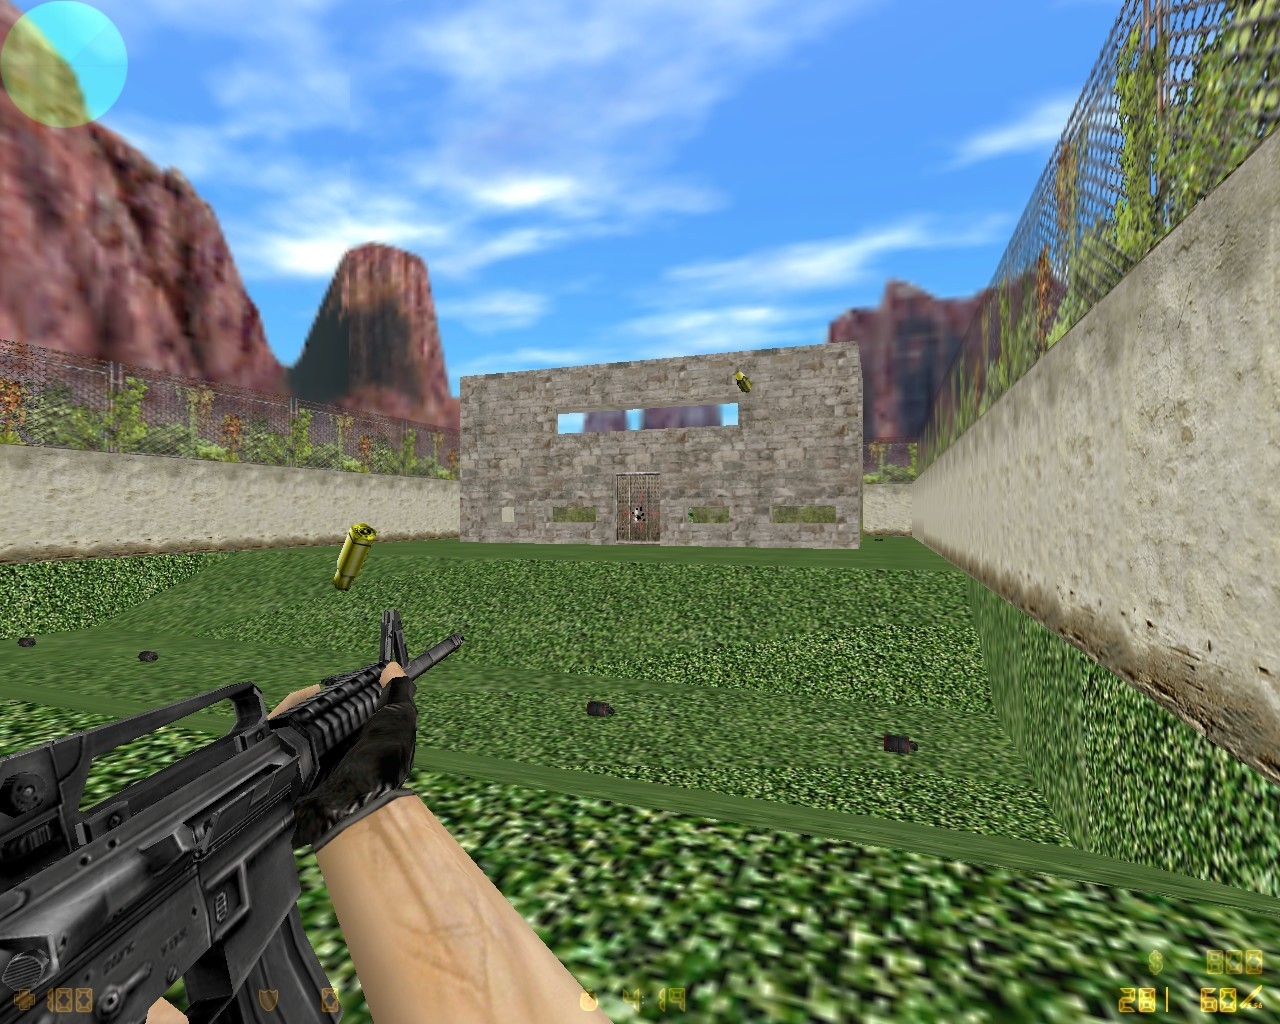 Counter-Strike Map - aim_grassyard screenshot 2